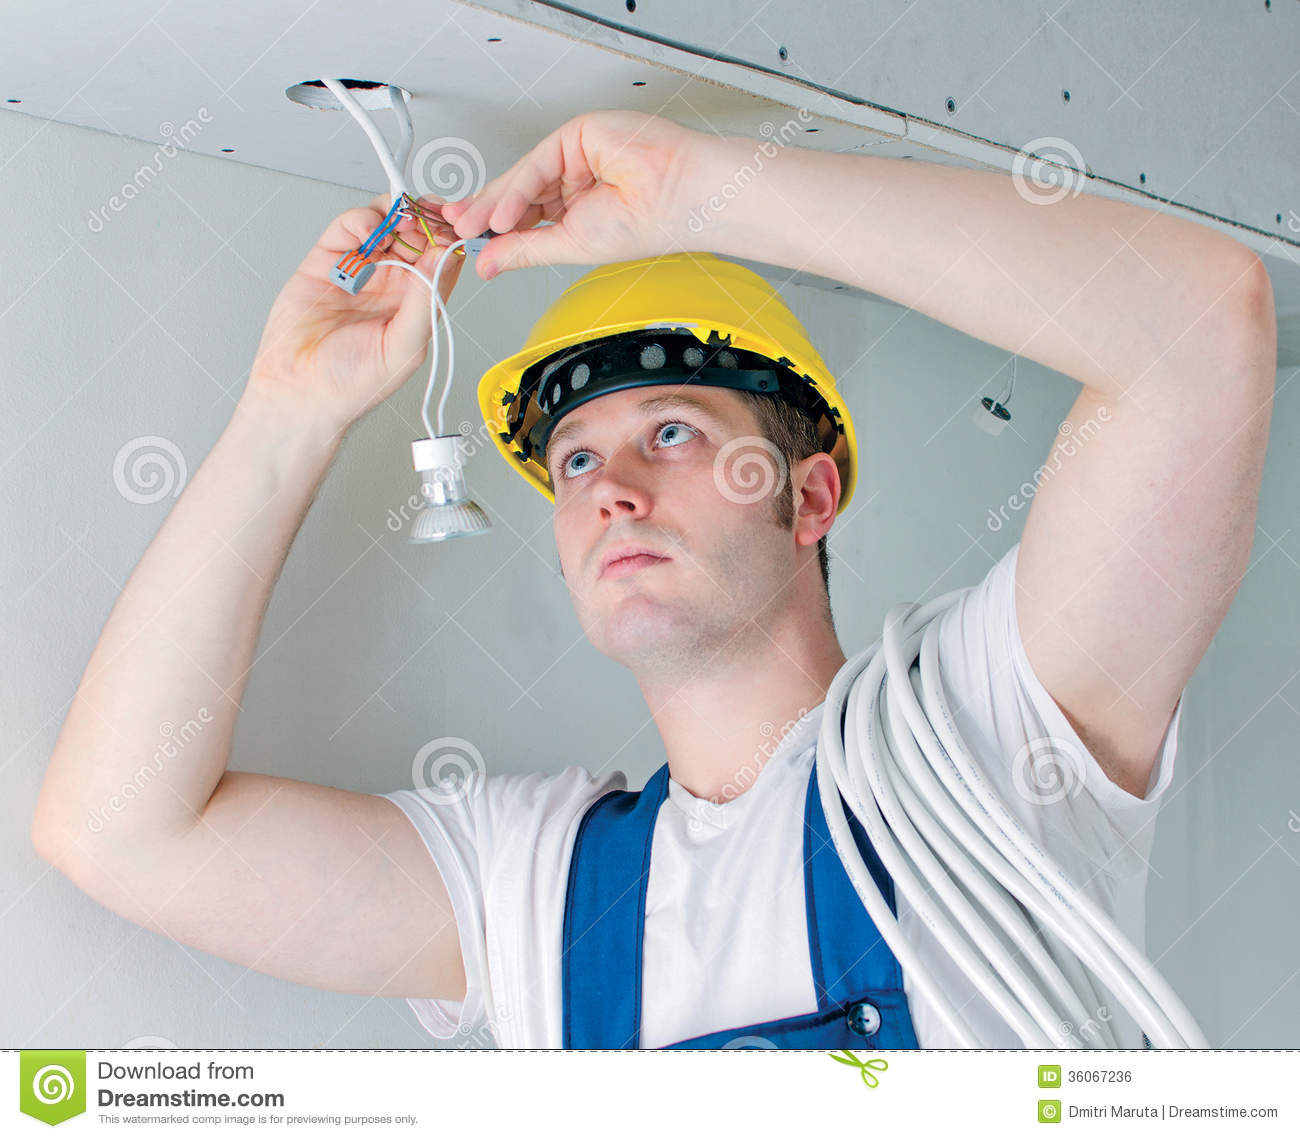 Certified Electrician Royalty Free Stock Image - Image: 36067236